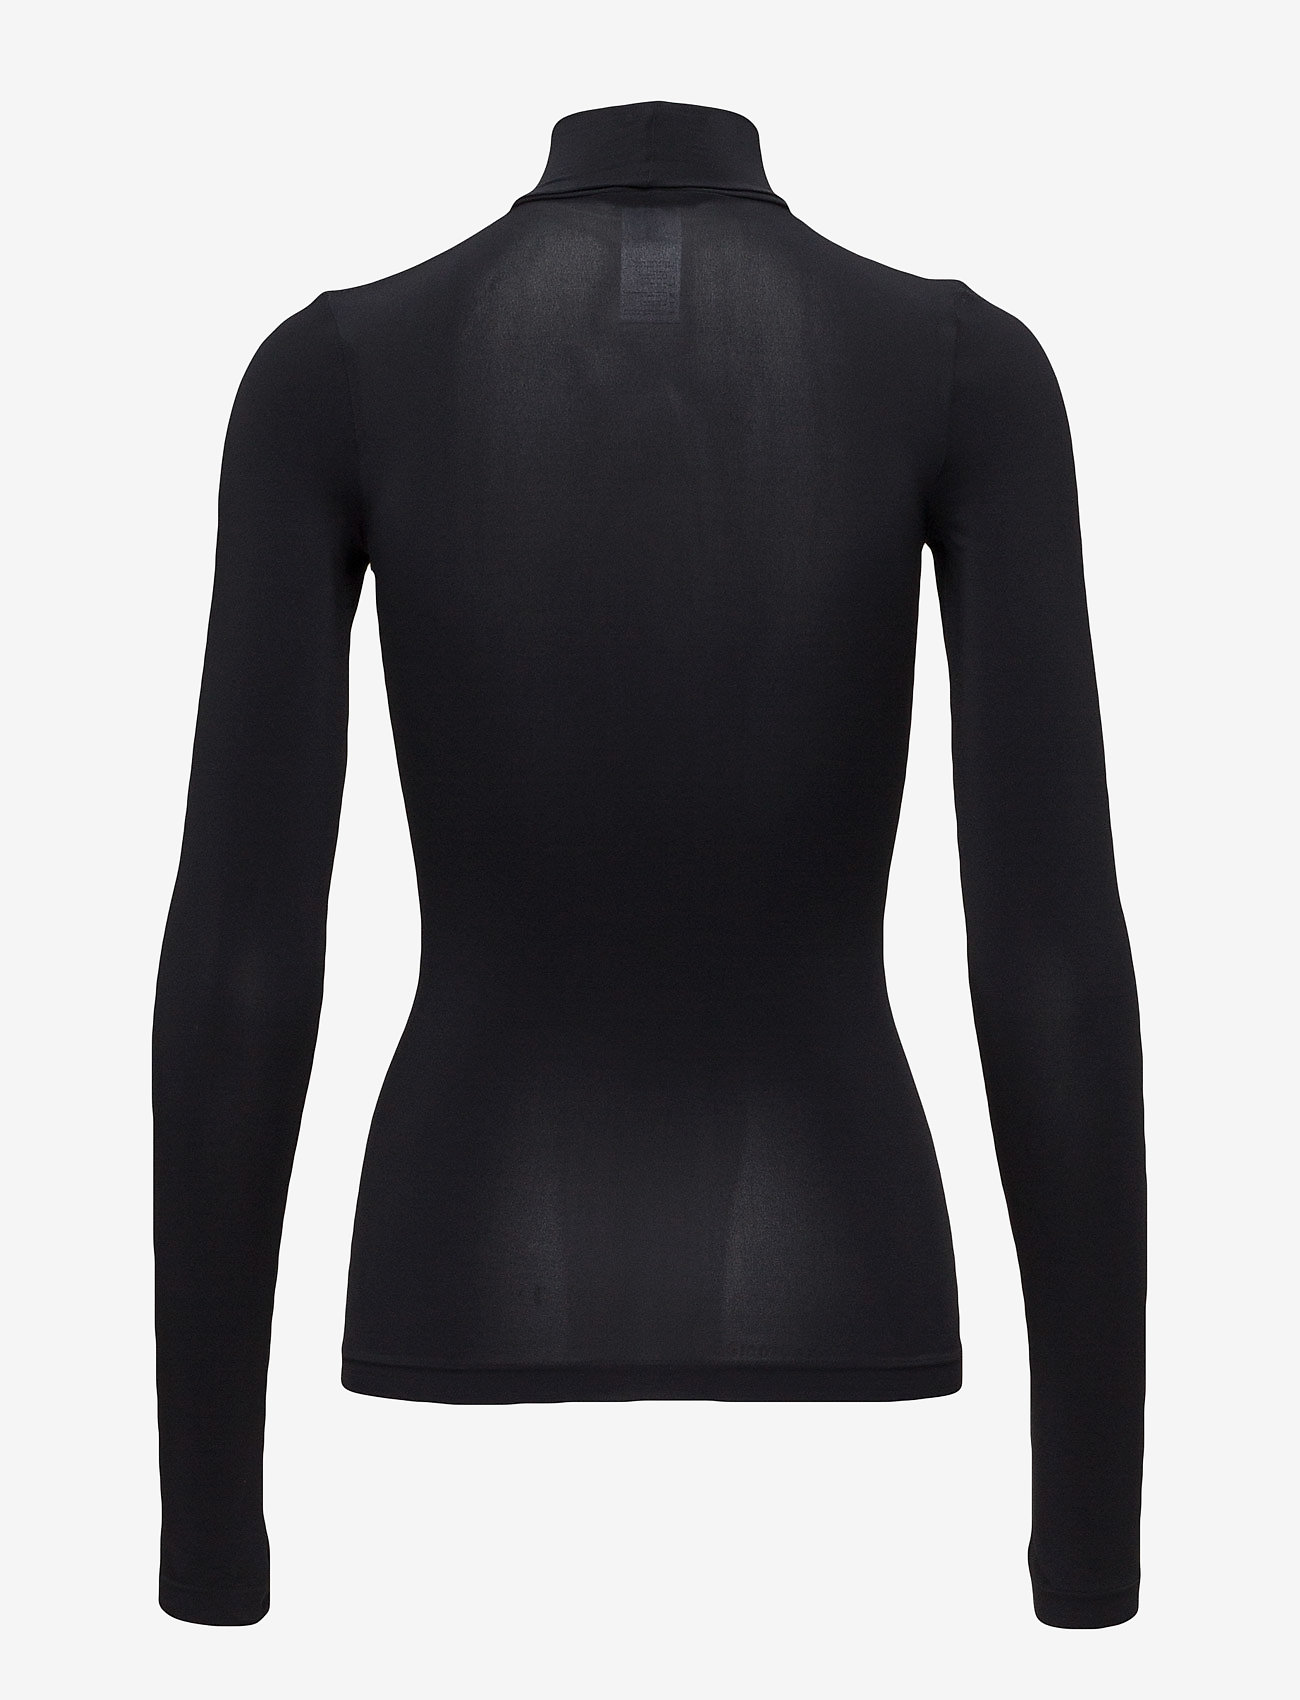 Buenos Aires Pullover (Black) (165 €) - Wolford DhXoQ